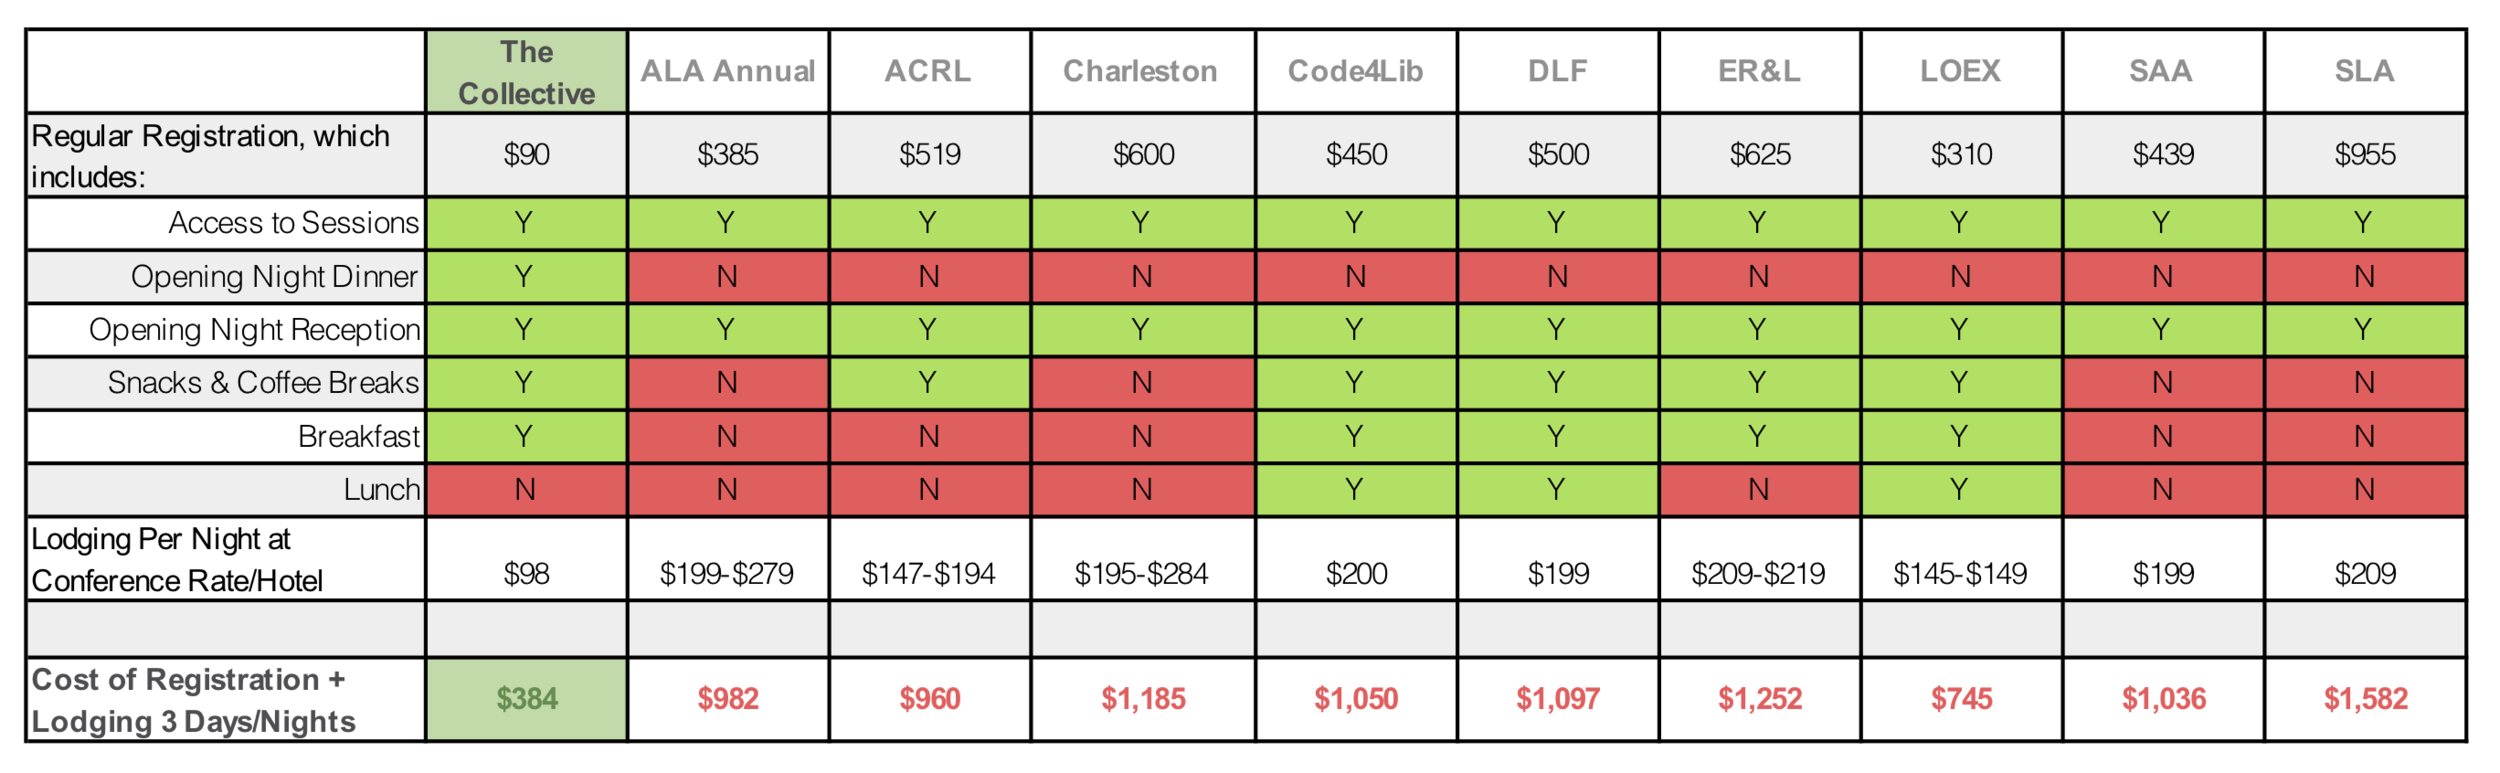 """Conference Cost Comparison   This chart compares the total cost of attending nine well established library conferences, based on 2019 data. """"Total cost"""" uses the lowest hotel room price listed & reflects the registration fee plus 3 hotel nights for each event. The data reveals that the cost of attending The Collective is roughly 1/3 of the cost of the typical library conference with an unparalleled registration fee in terms of affordability."""